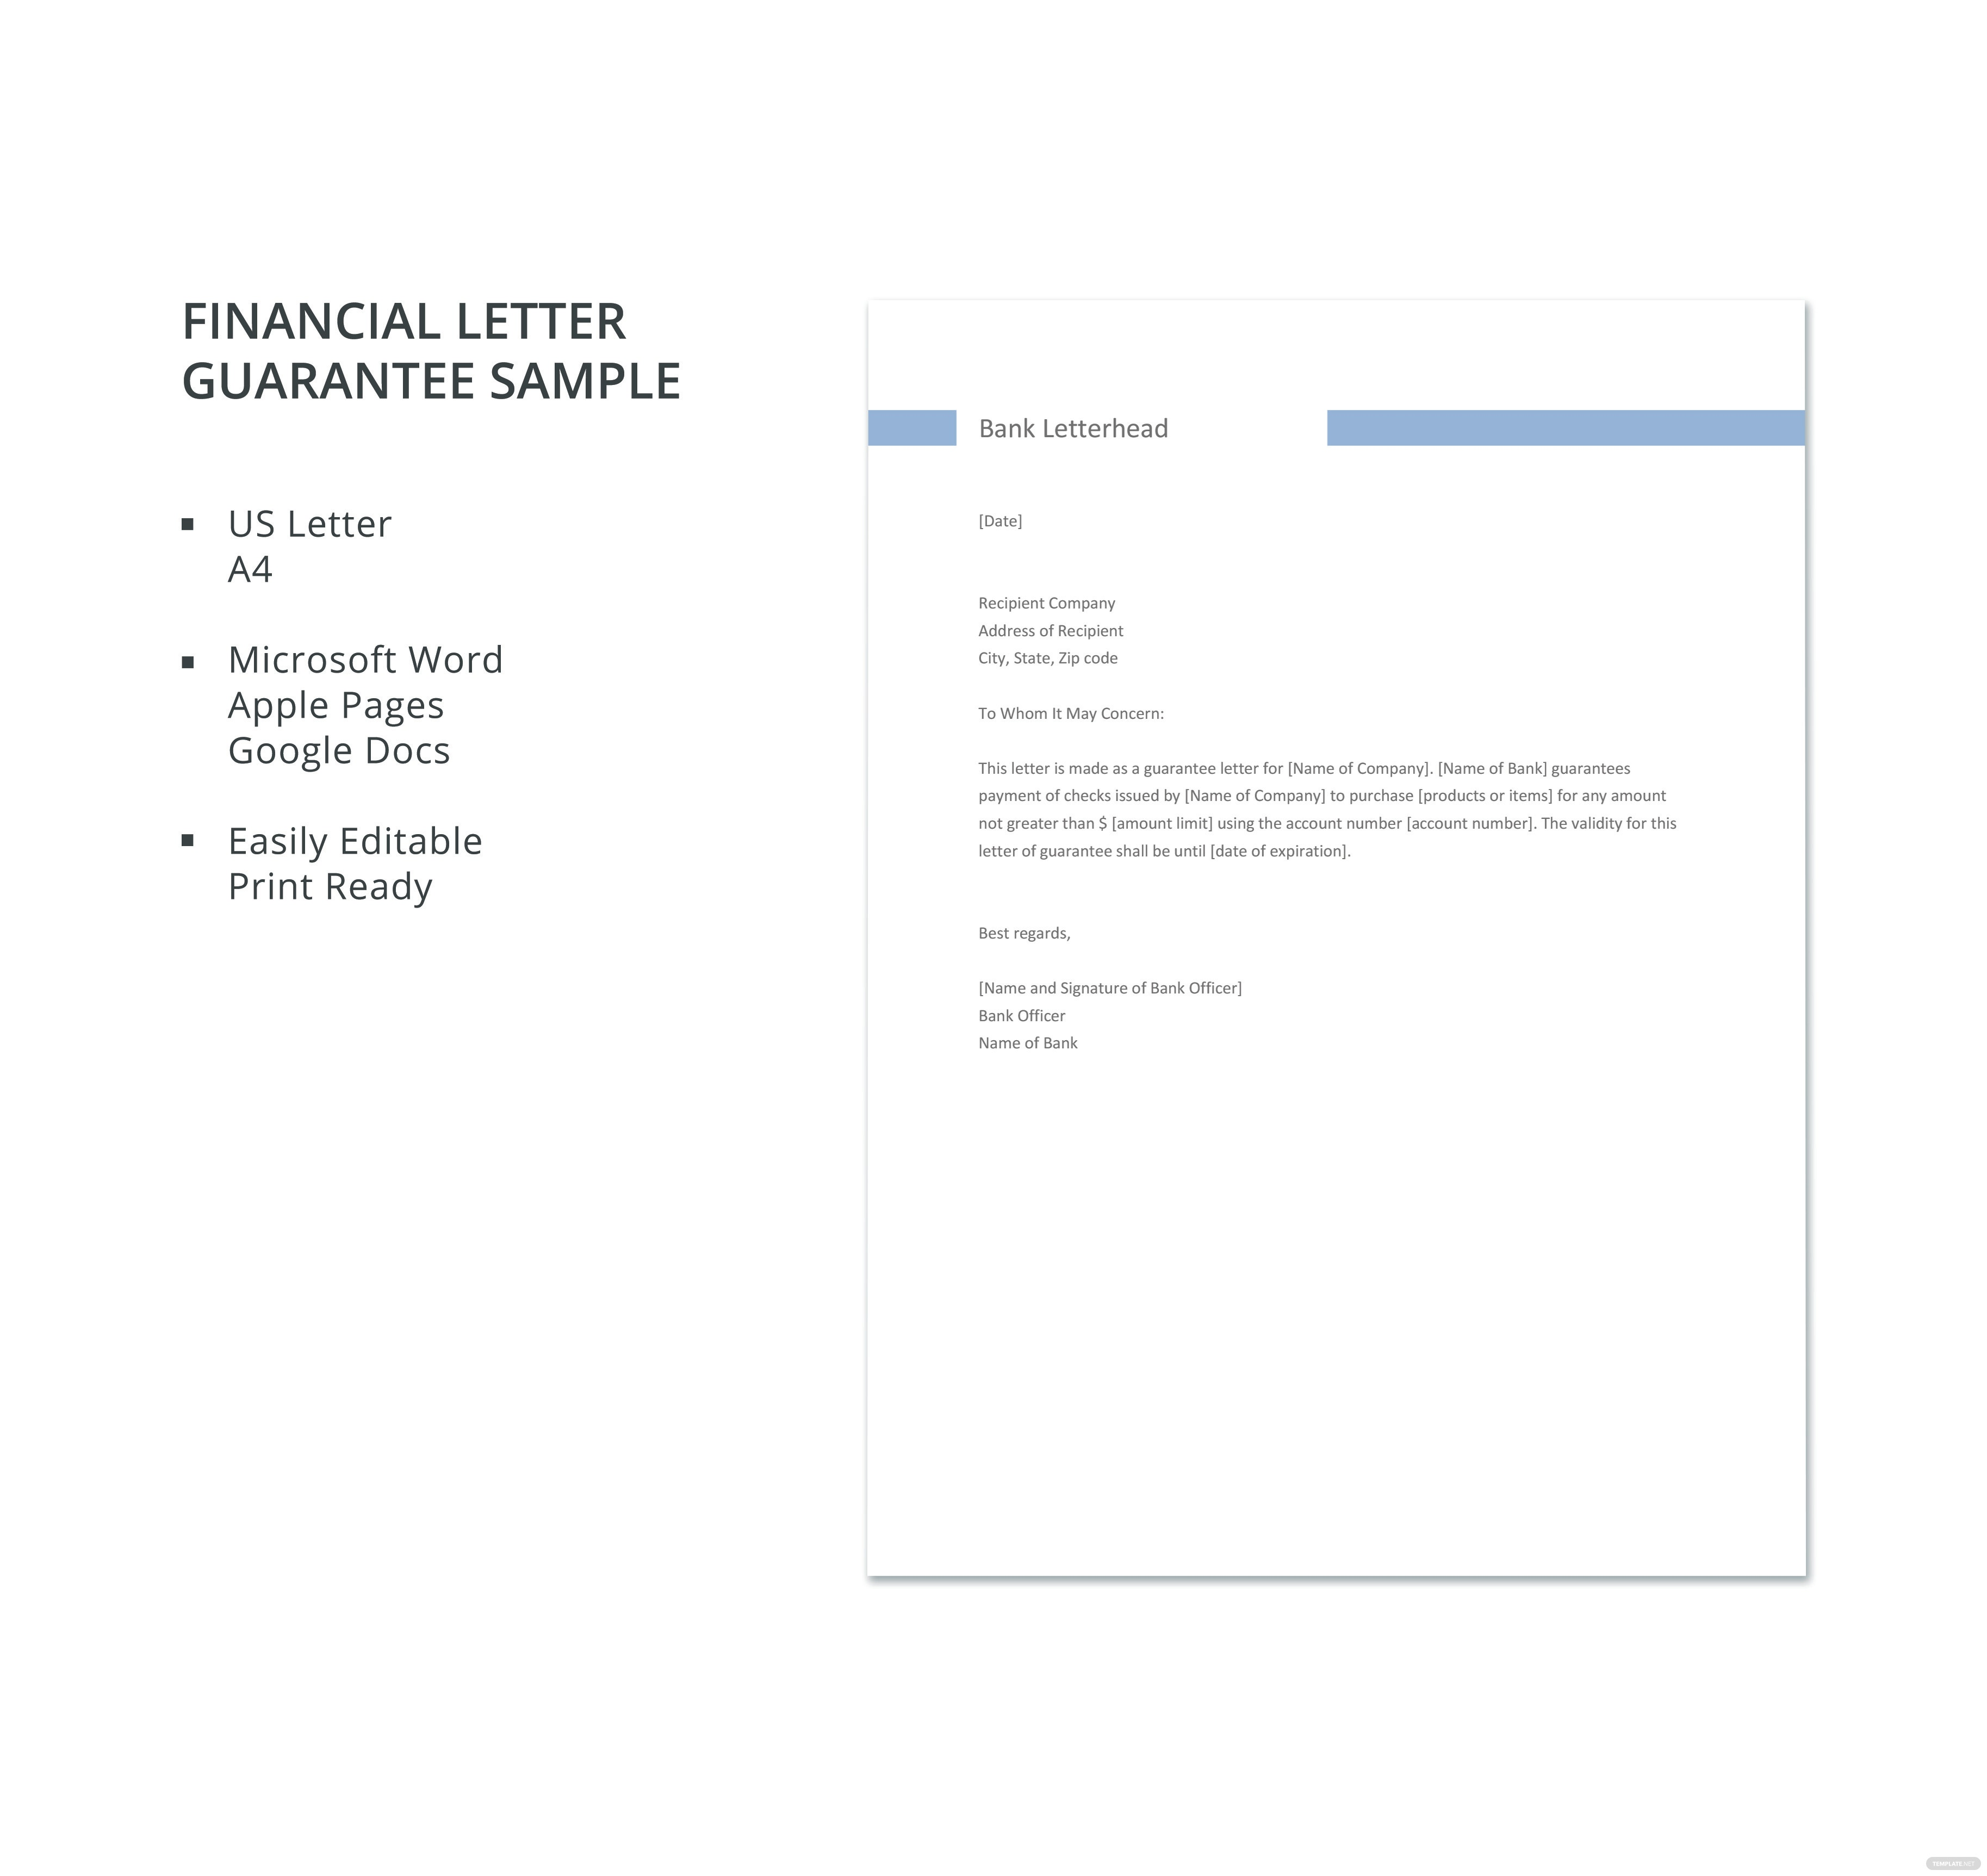 Financial letter guarantee sample template in microsoft word apple click to see full template financial letter guarantee sample altavistaventures Images